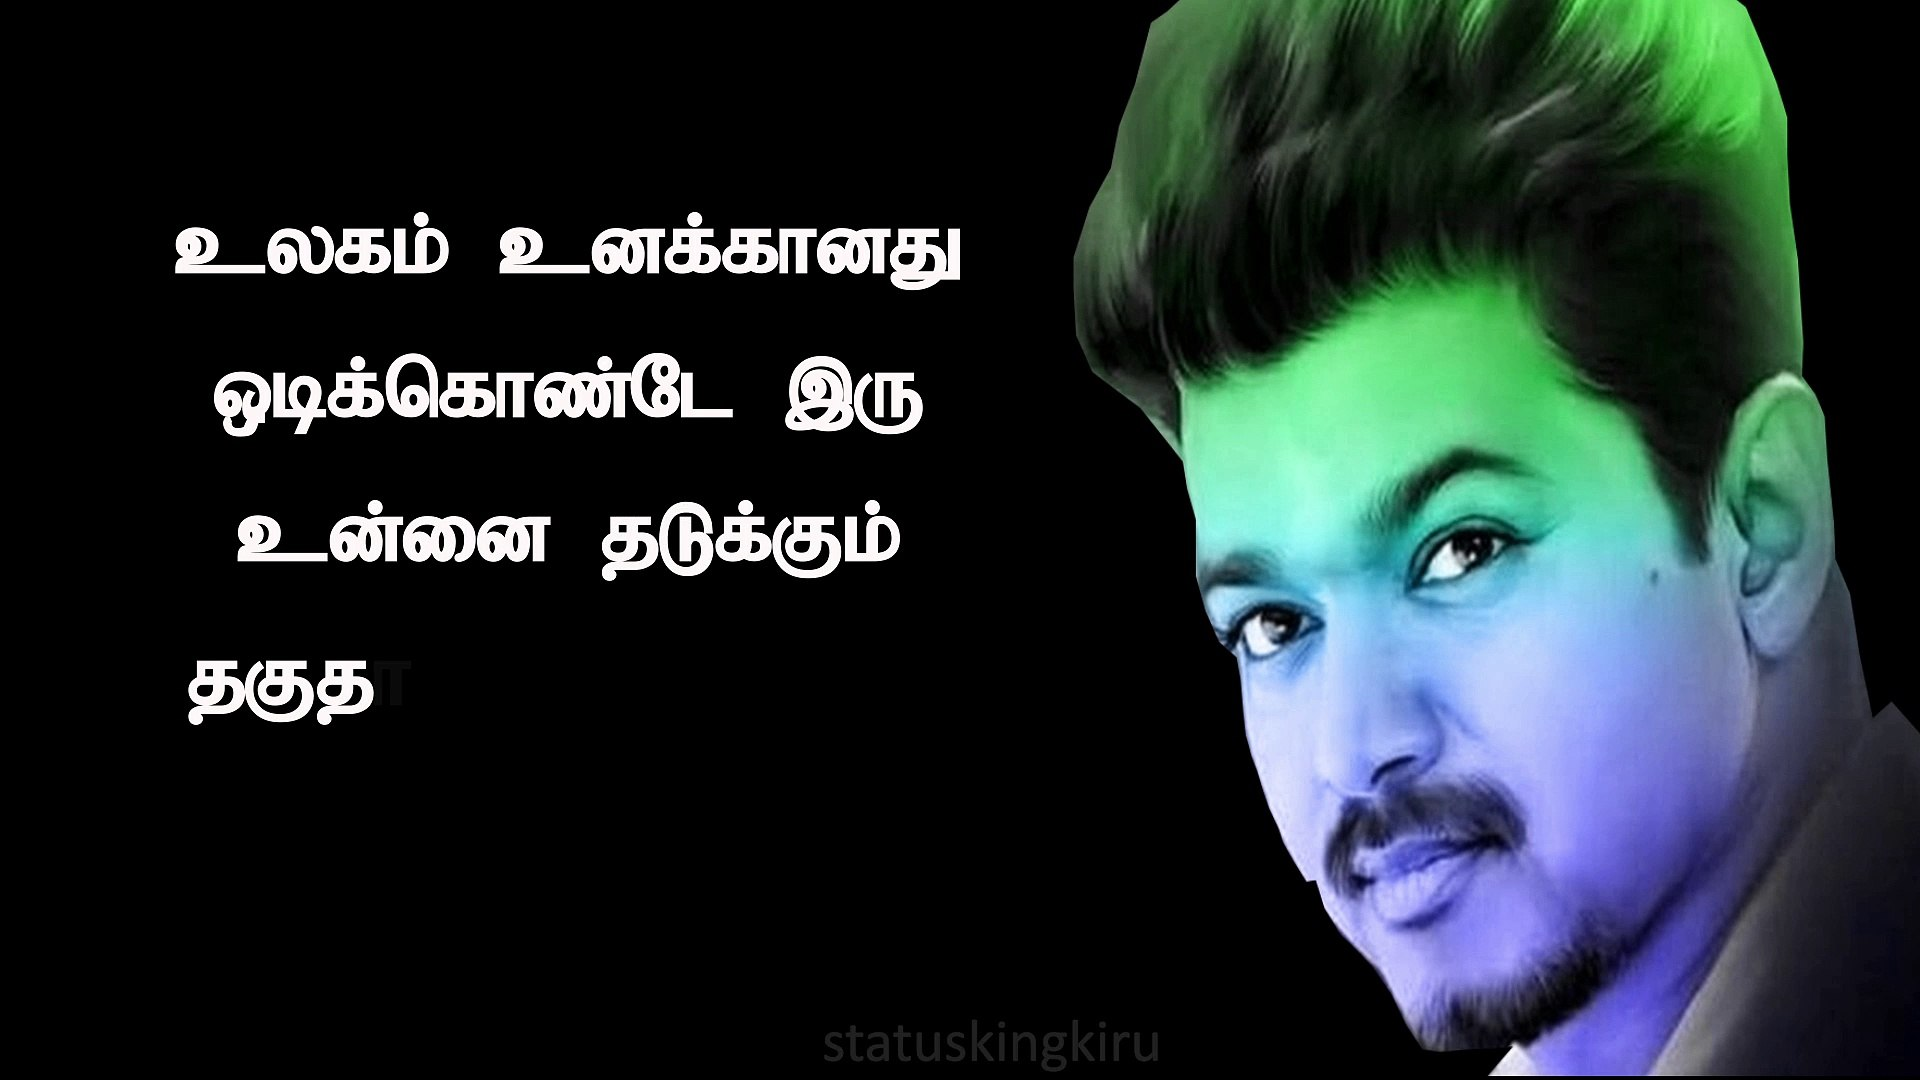 Tamil Motivational Whatsapp Status |Vijay Motivational Whatsapp Status | Tamil Inspirational Whatsap